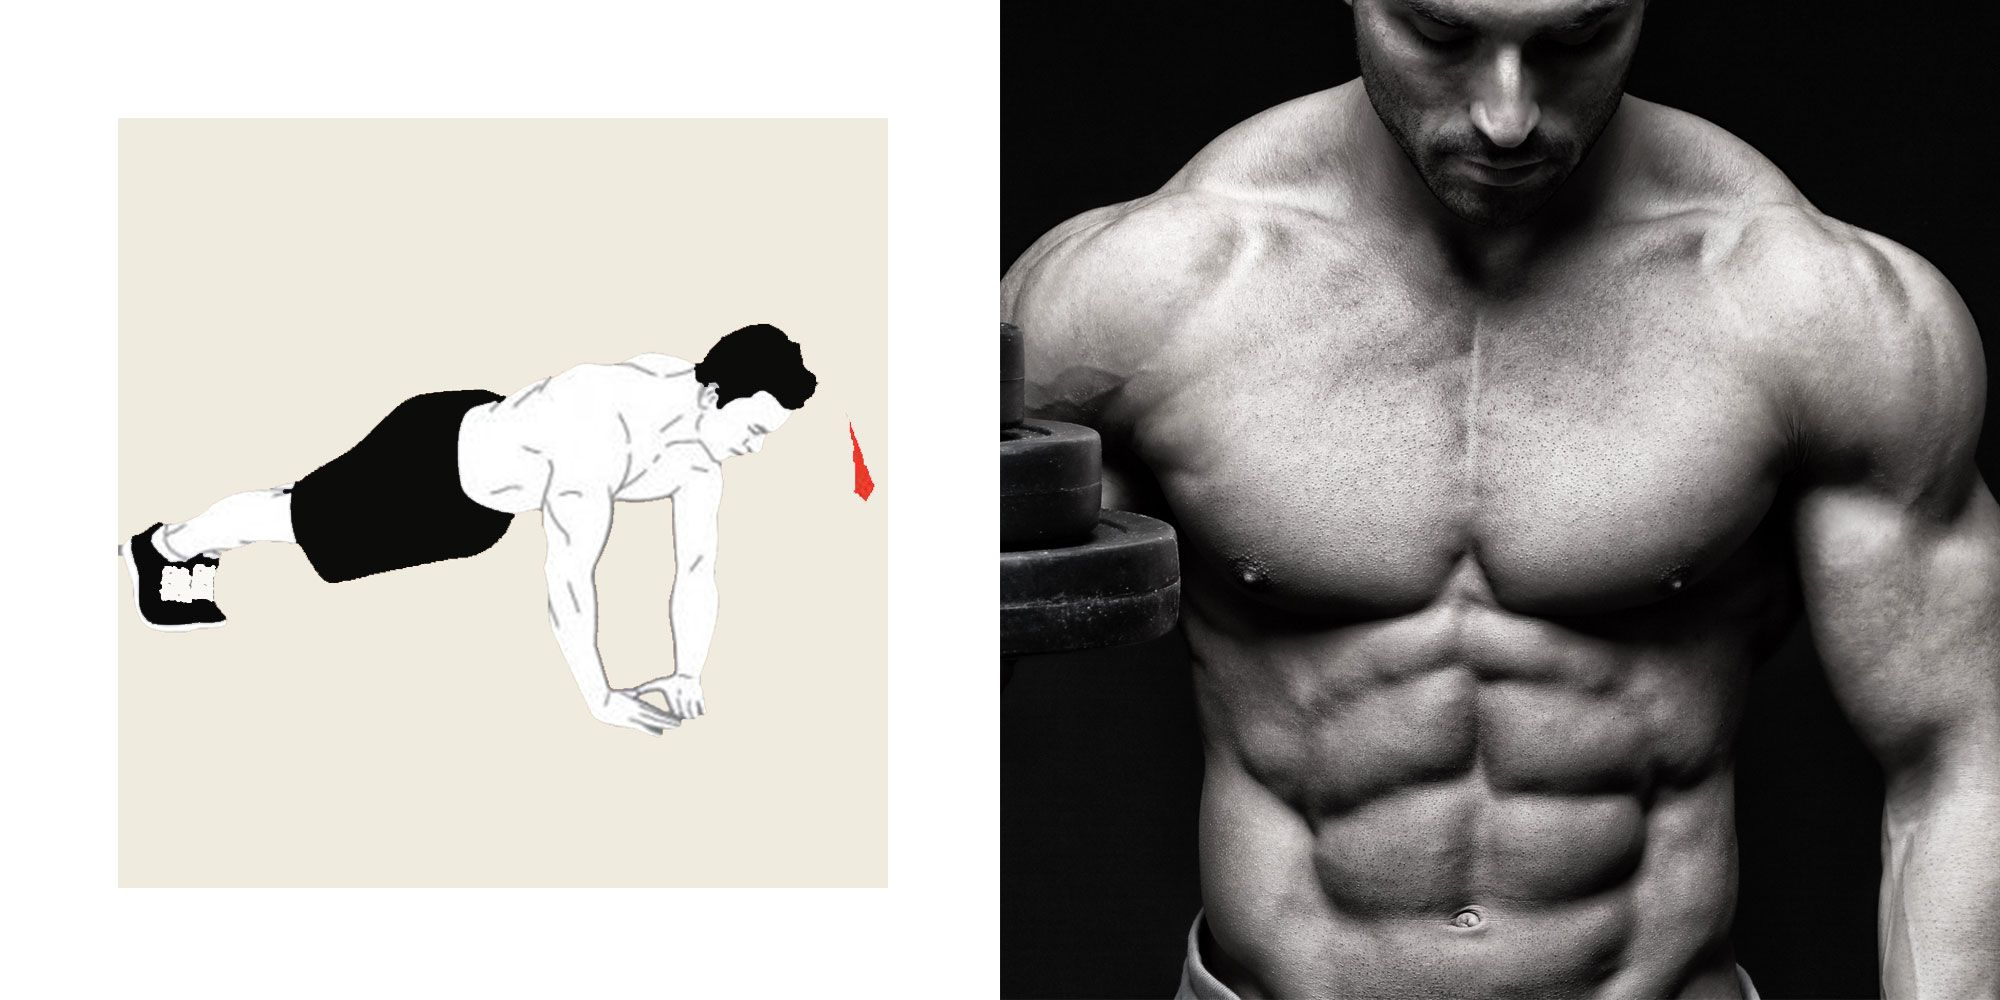 Home Chest Workout: Pump up Your Pecs with Our Eight-week Training Plan